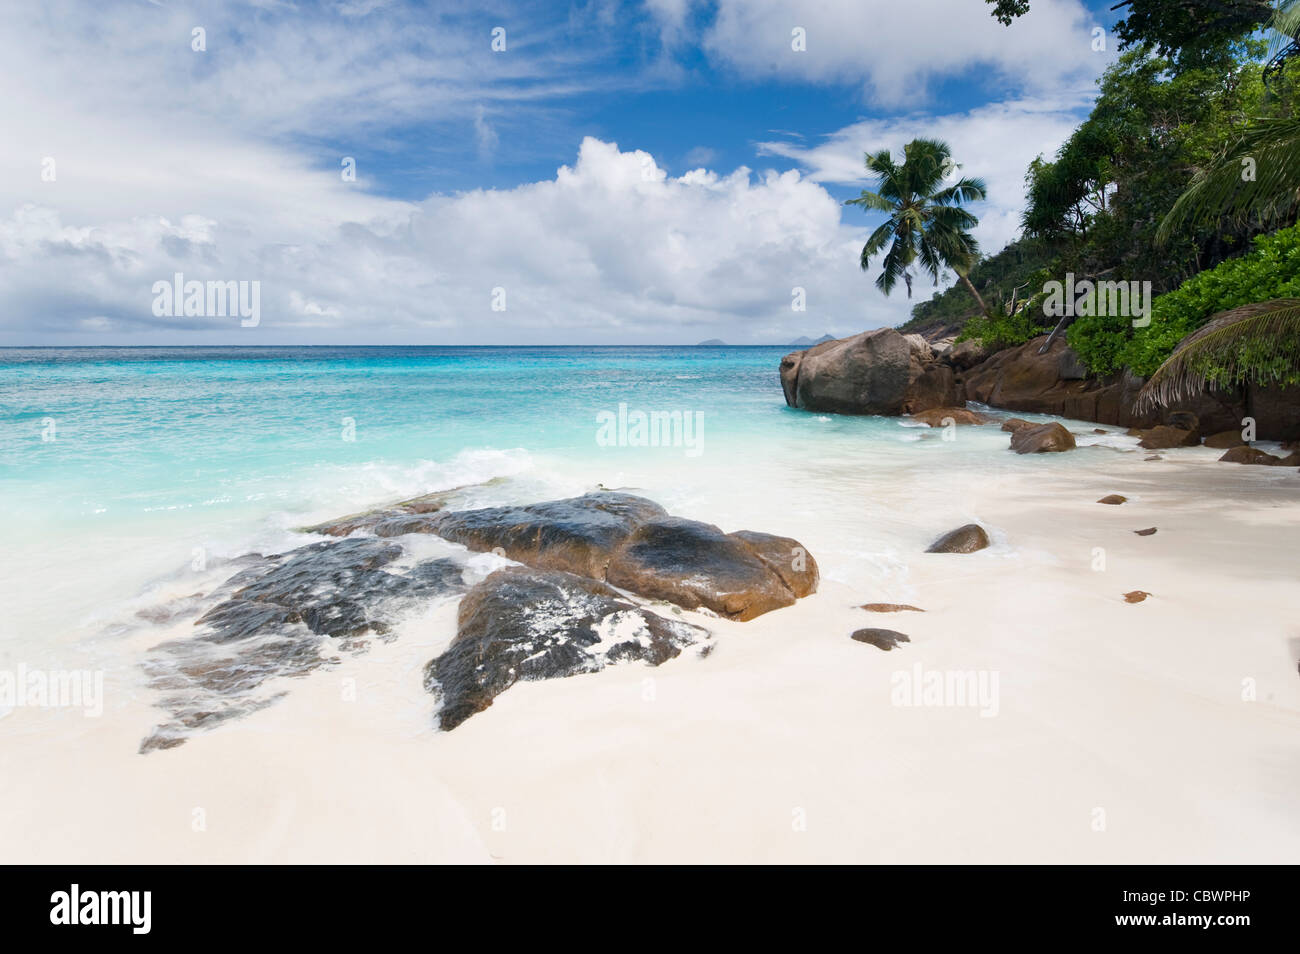 Four Seasons resort beach, Mahe, Seychelles Stock Photo